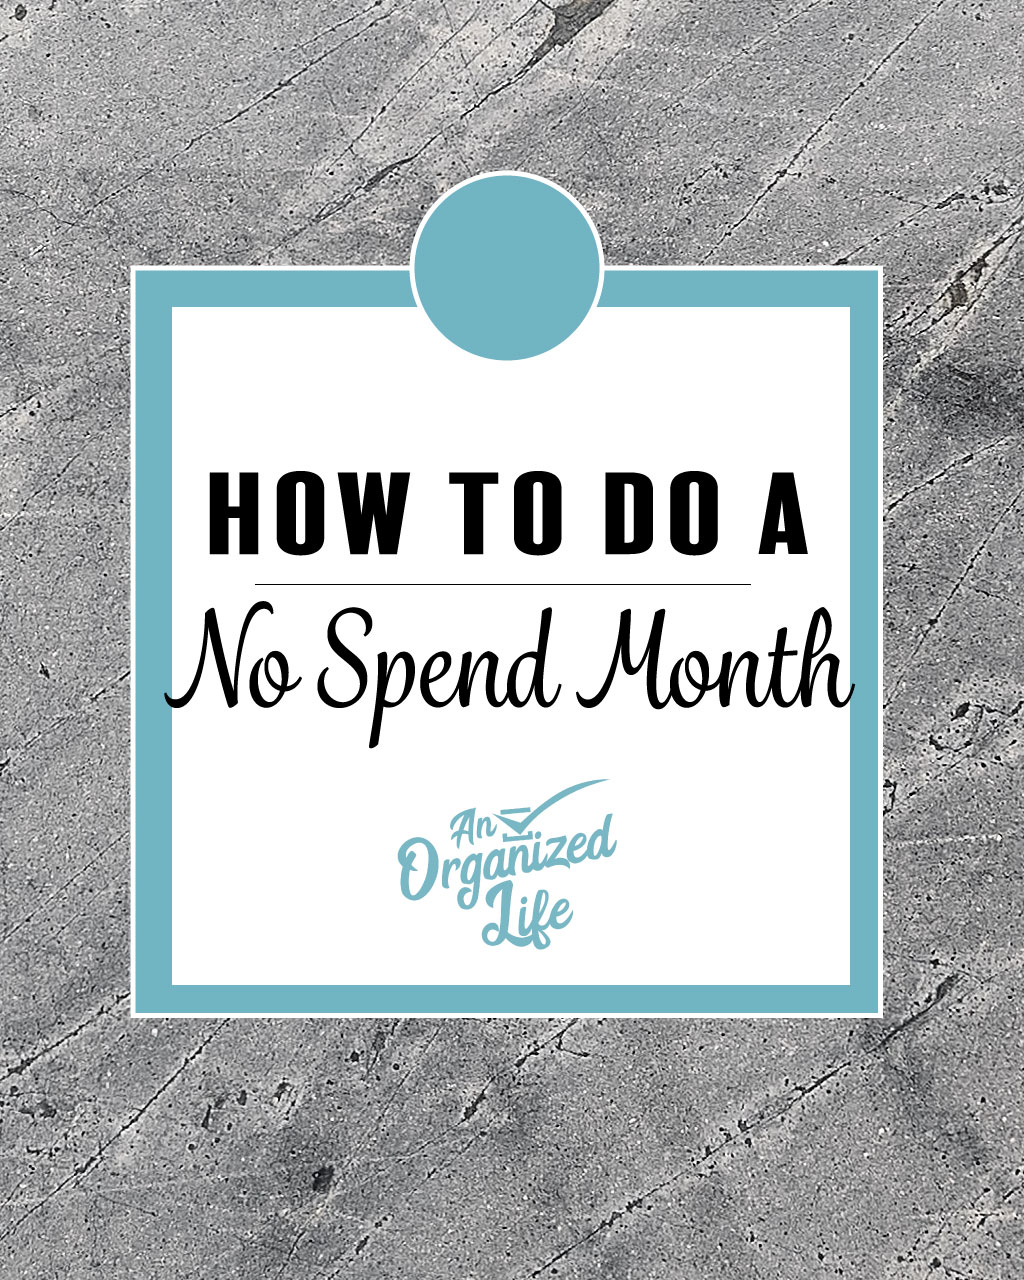 No Spend Month: An Organized Life